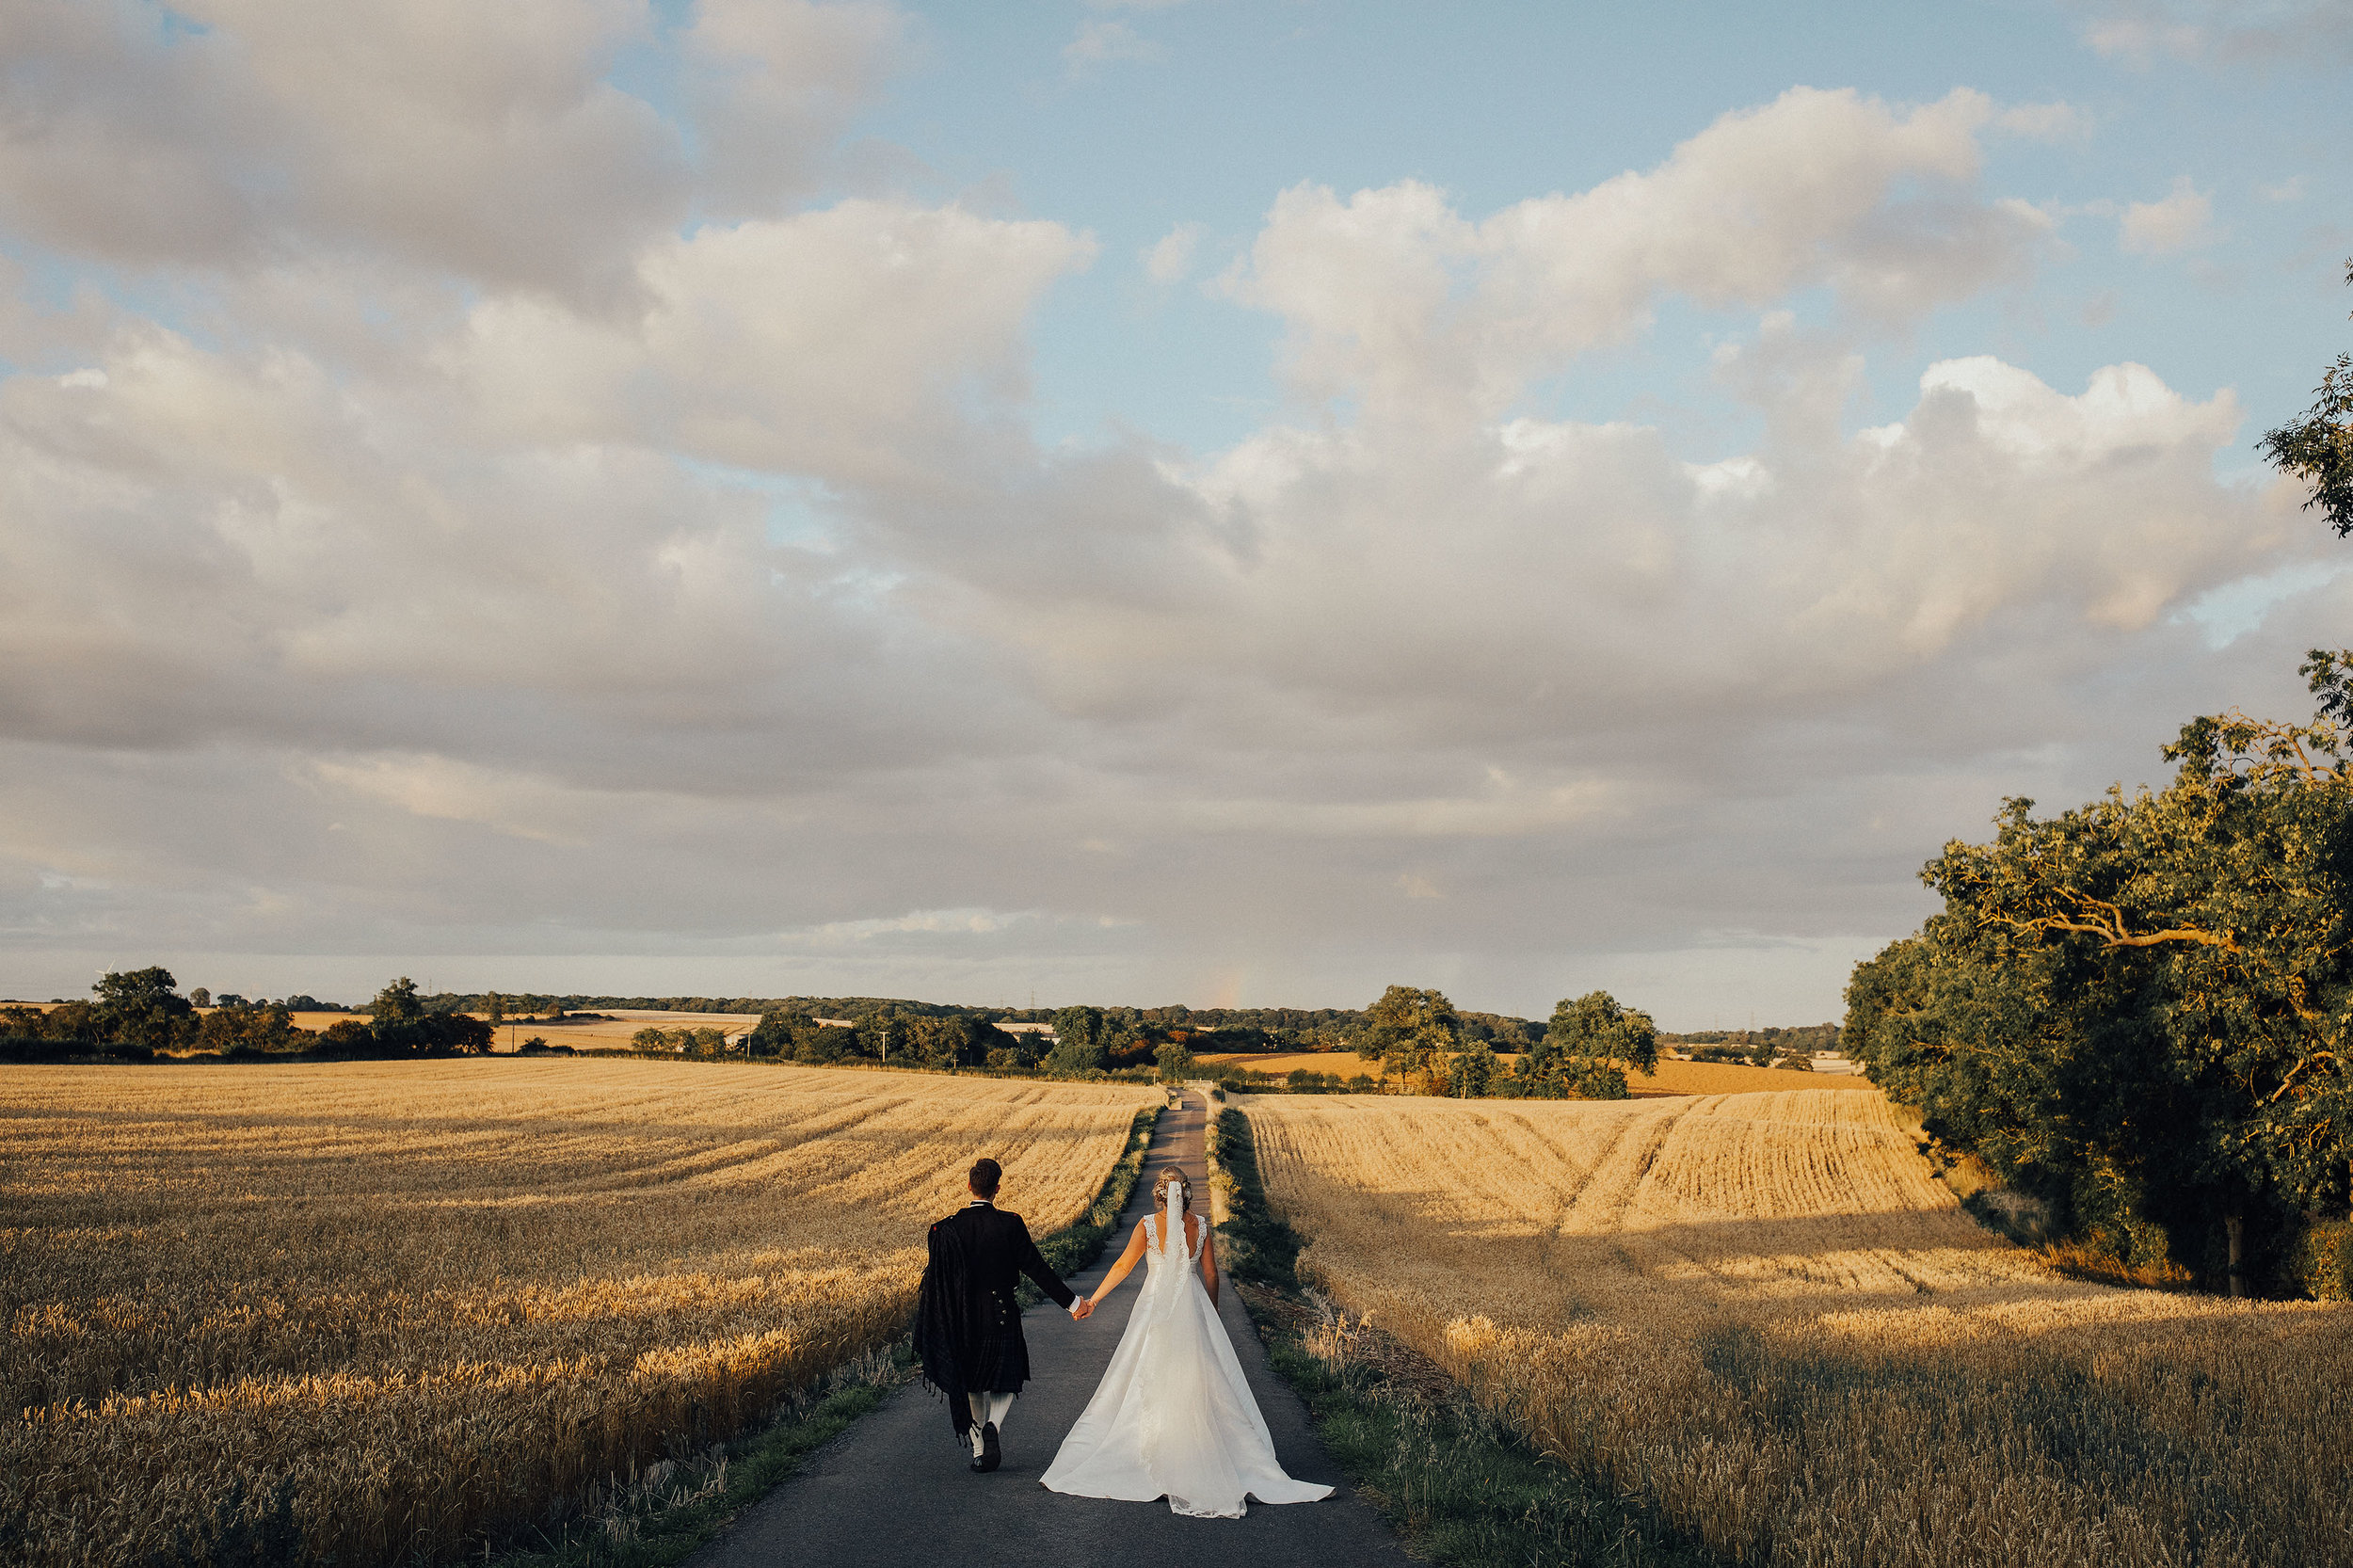 PJ_PHILLIPS_PHOTOGRAPHY_2018_SCOTLAND_WEDDING_PHOTOOGRAPHER_96.jpg